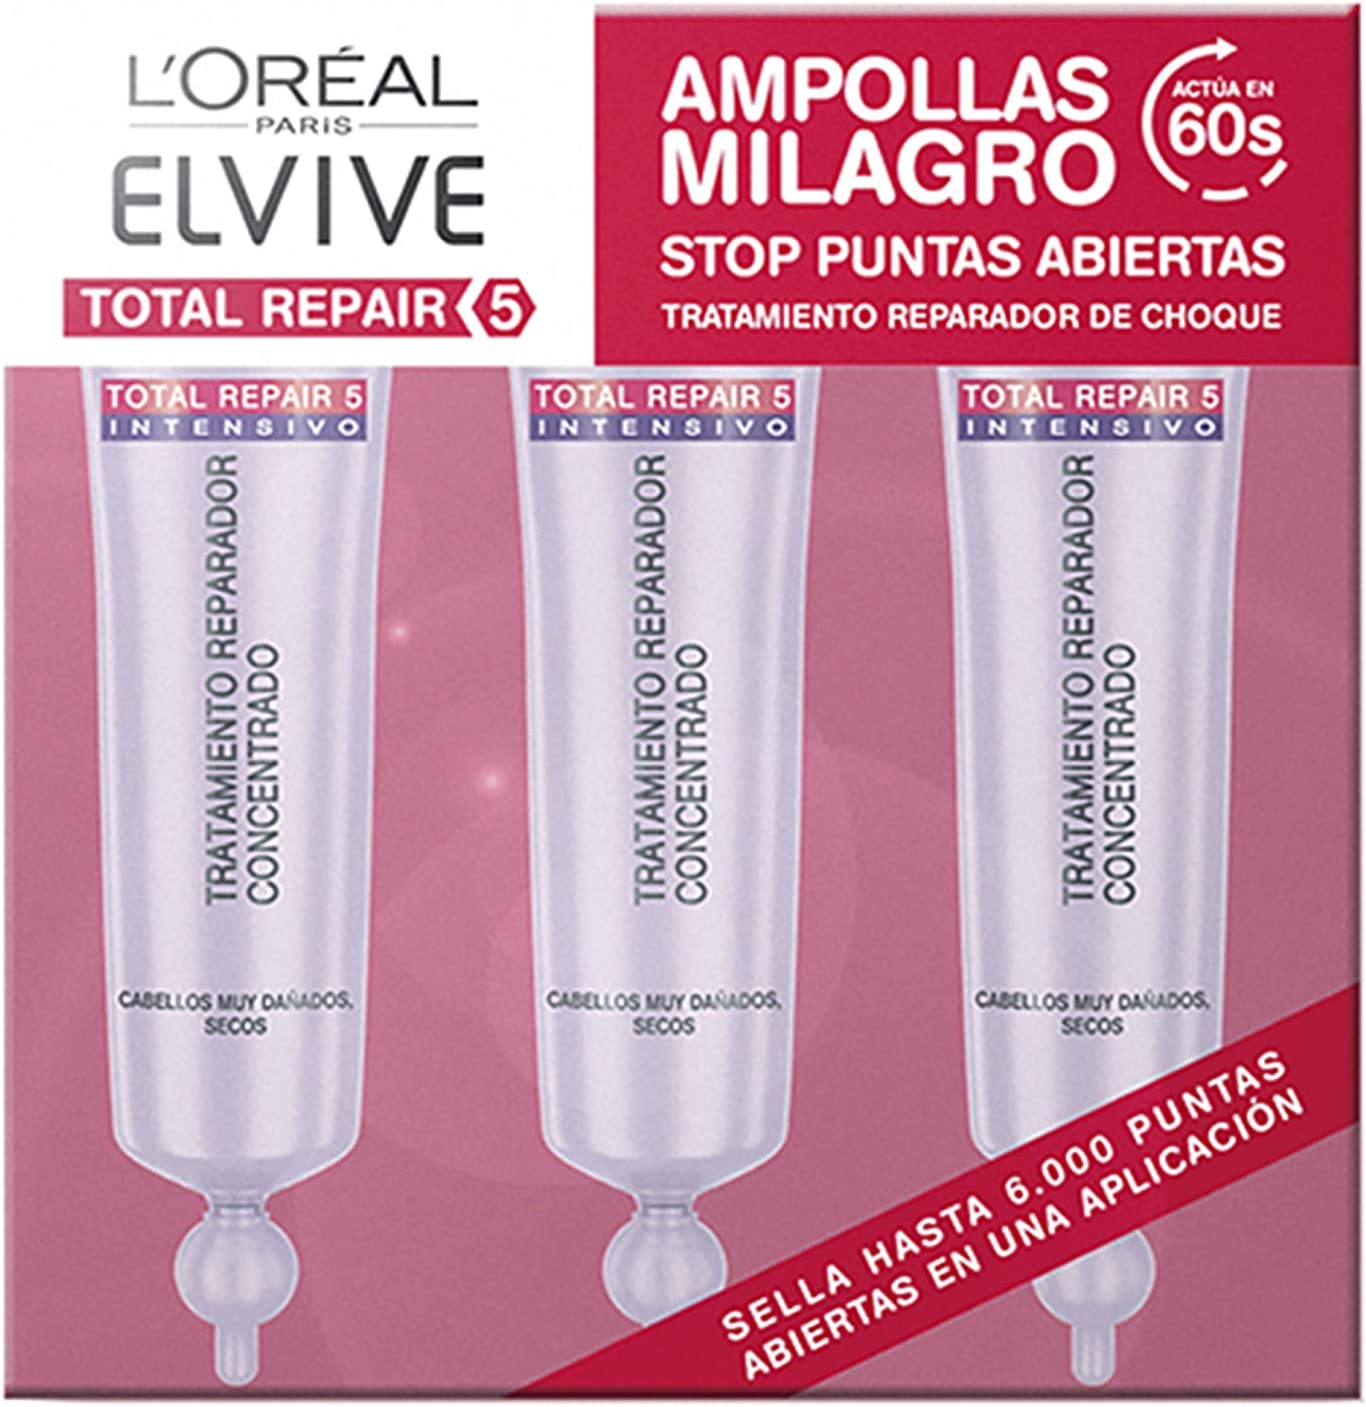 L'Oréal Paris Elvive Total Repair 5 Ampolla Reparadora para El Pelo Dañado 3 x 18 ml - Total: 54 ml